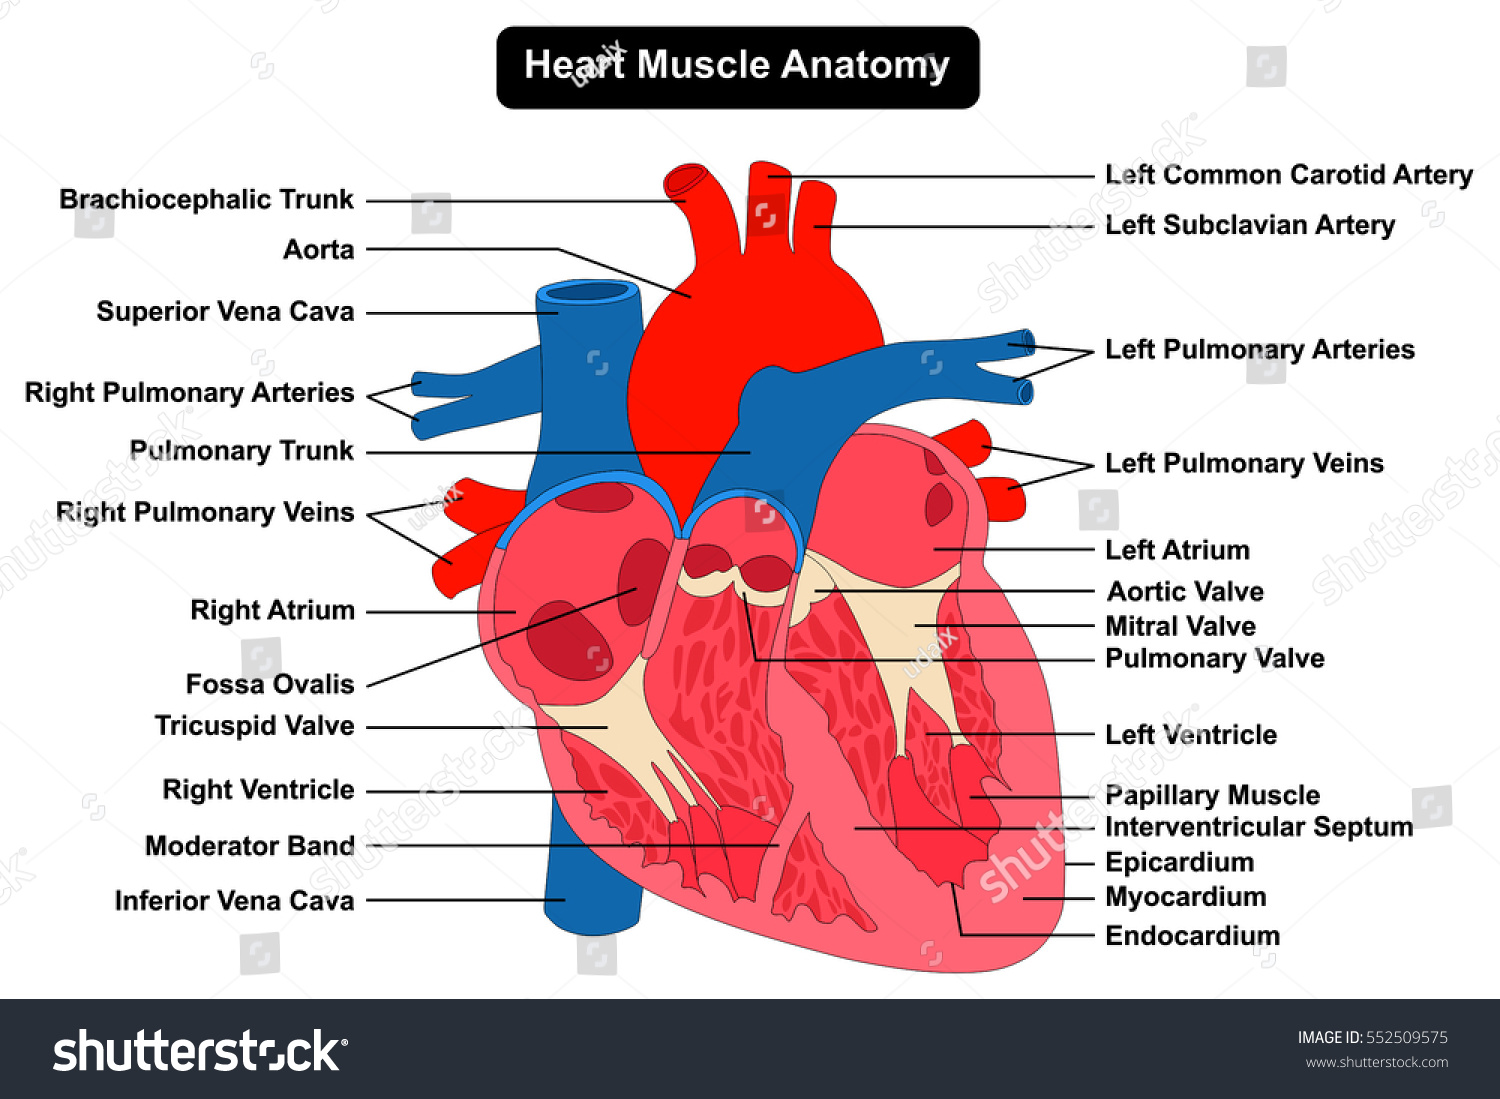 human heart muscle anatomy infographic chart figure with all parts, Muscles